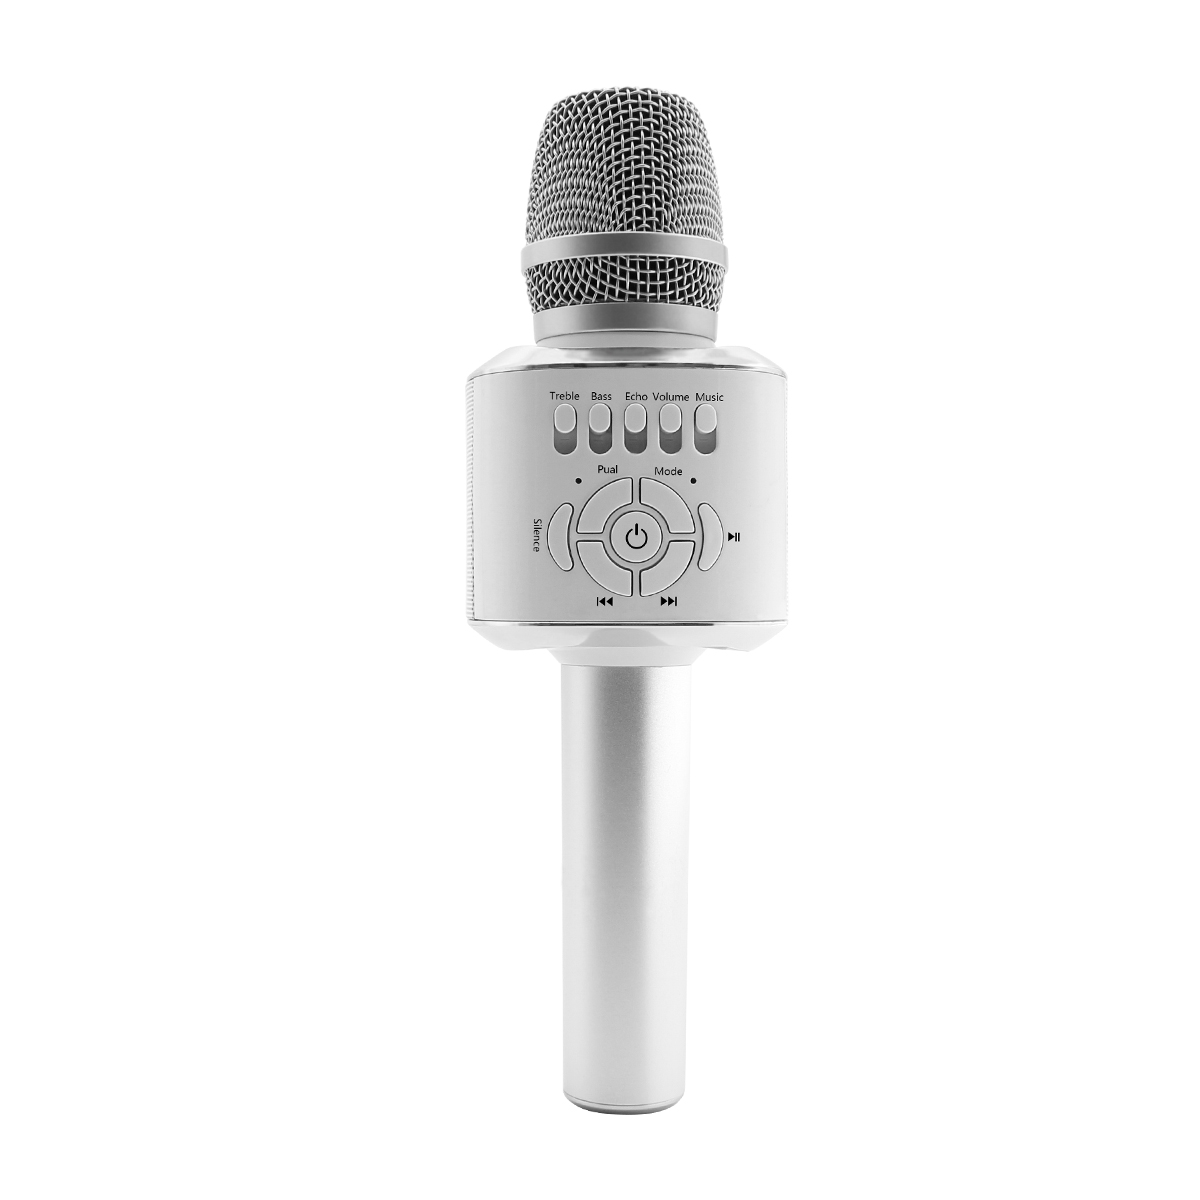 V29S Karaoke Microphone Wireless speaker for iPhone Android PC smart phone portable handheld microphone